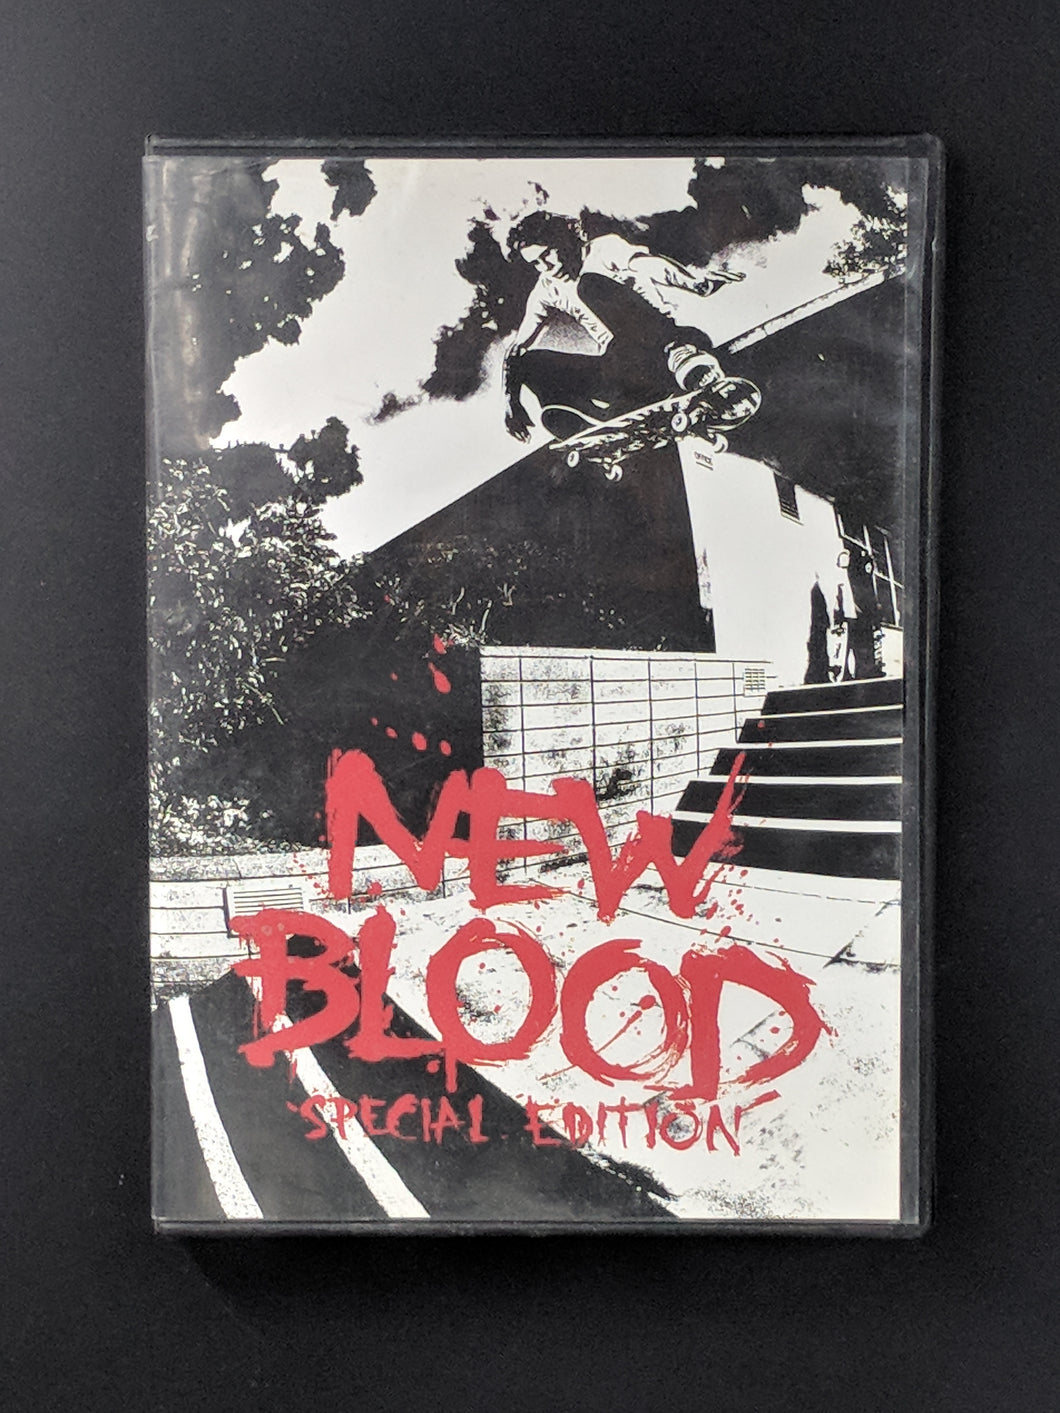 New Blood: Special Edition